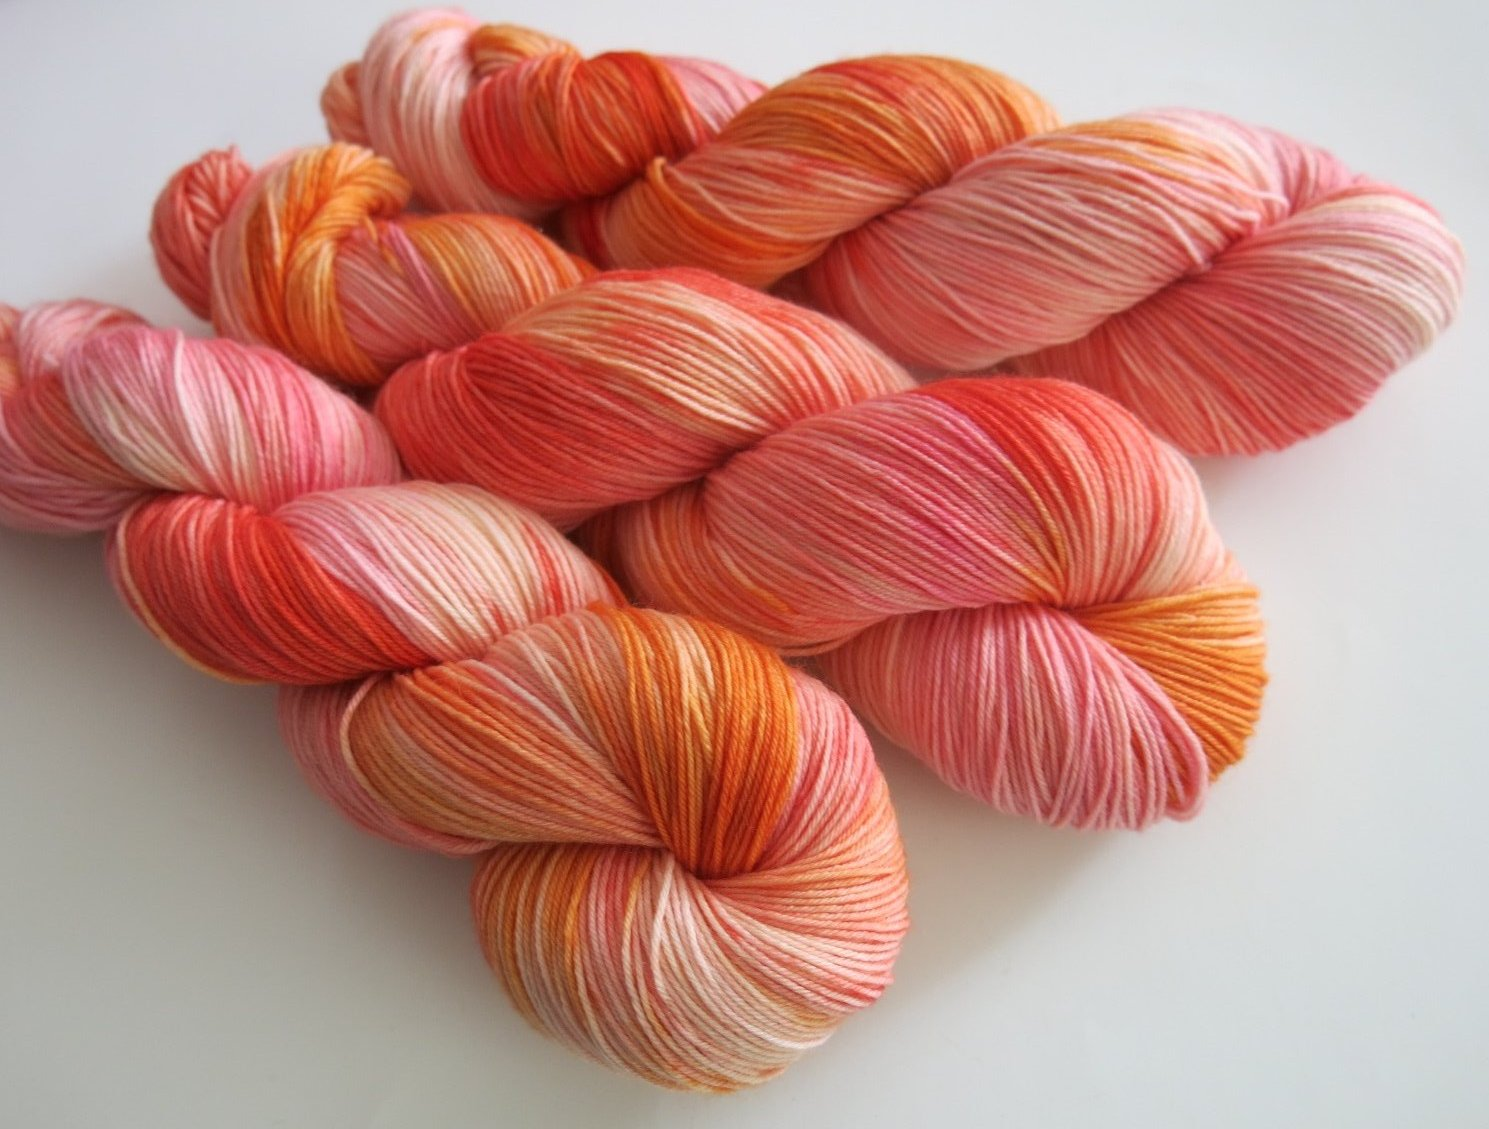 peachy sunset dyed sock yarn for knitting and crochet